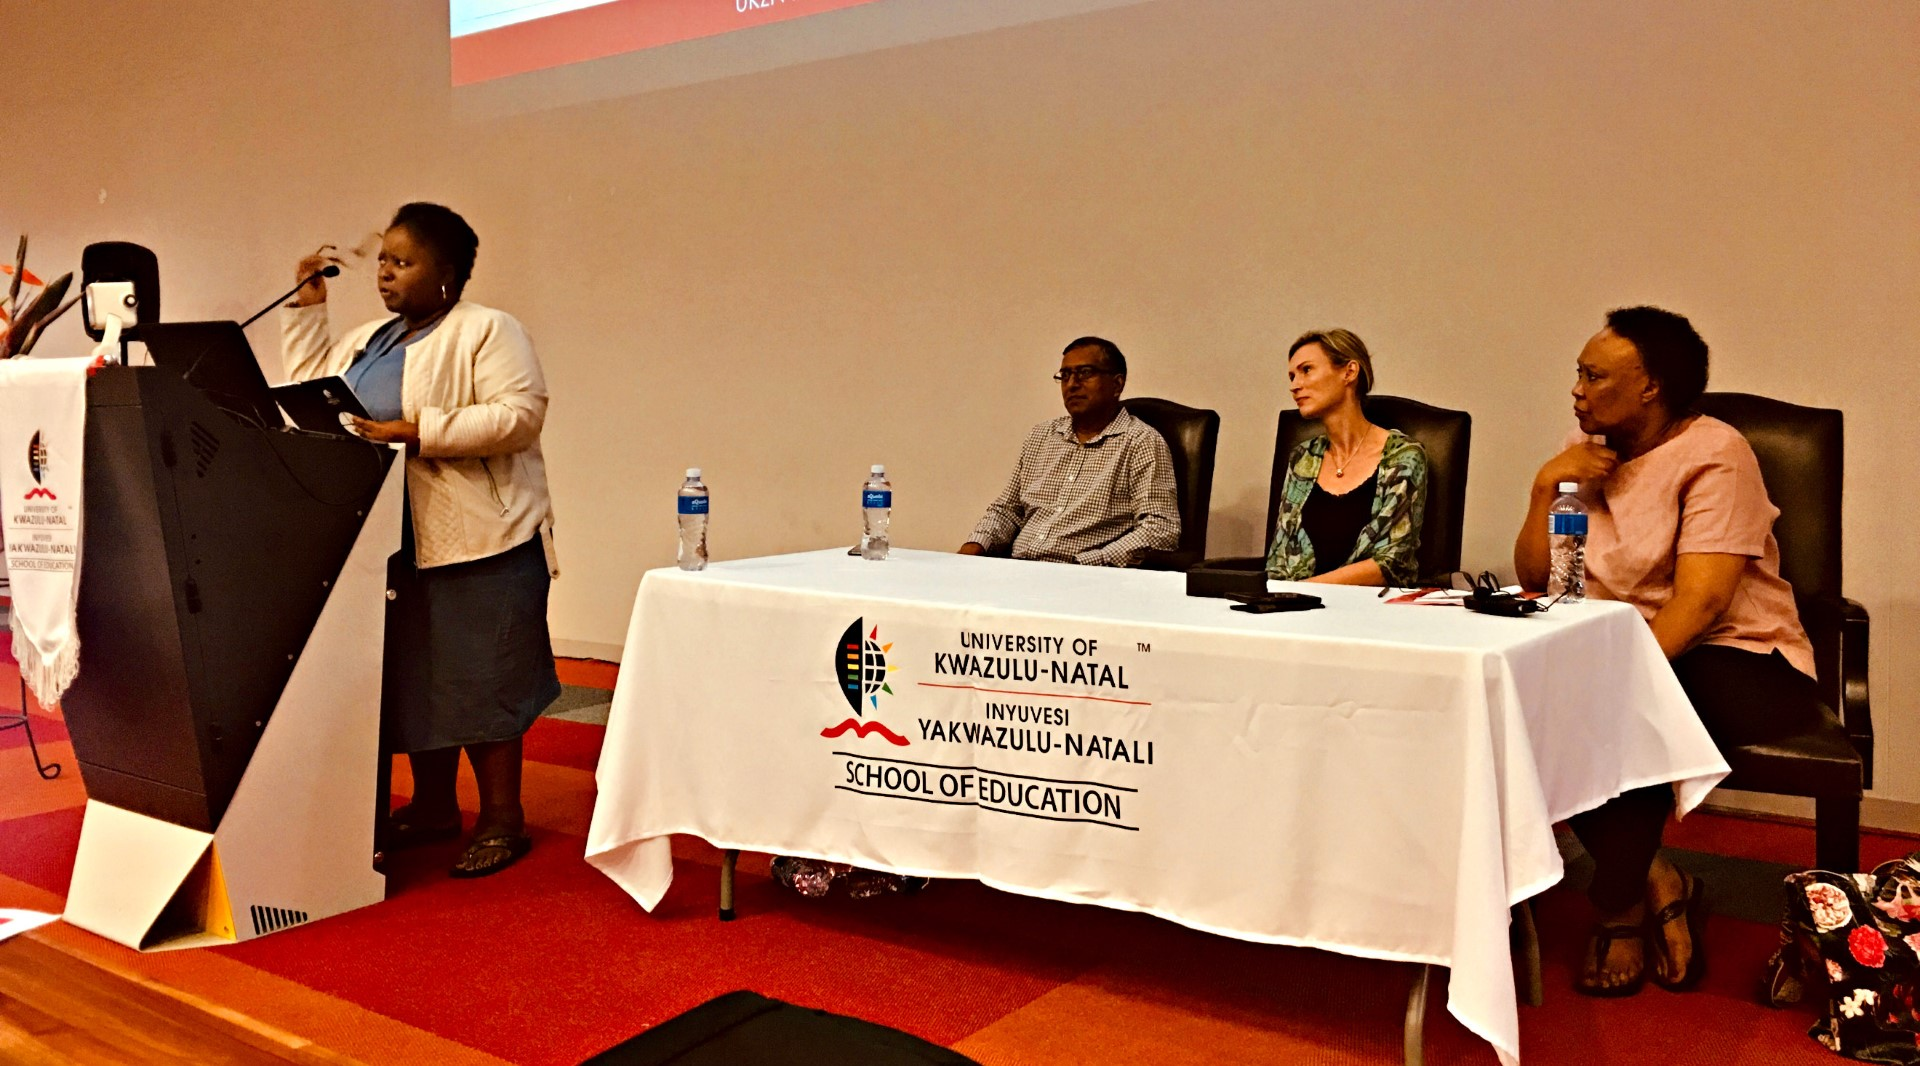 Highlights from the School of Education's Engagement Day